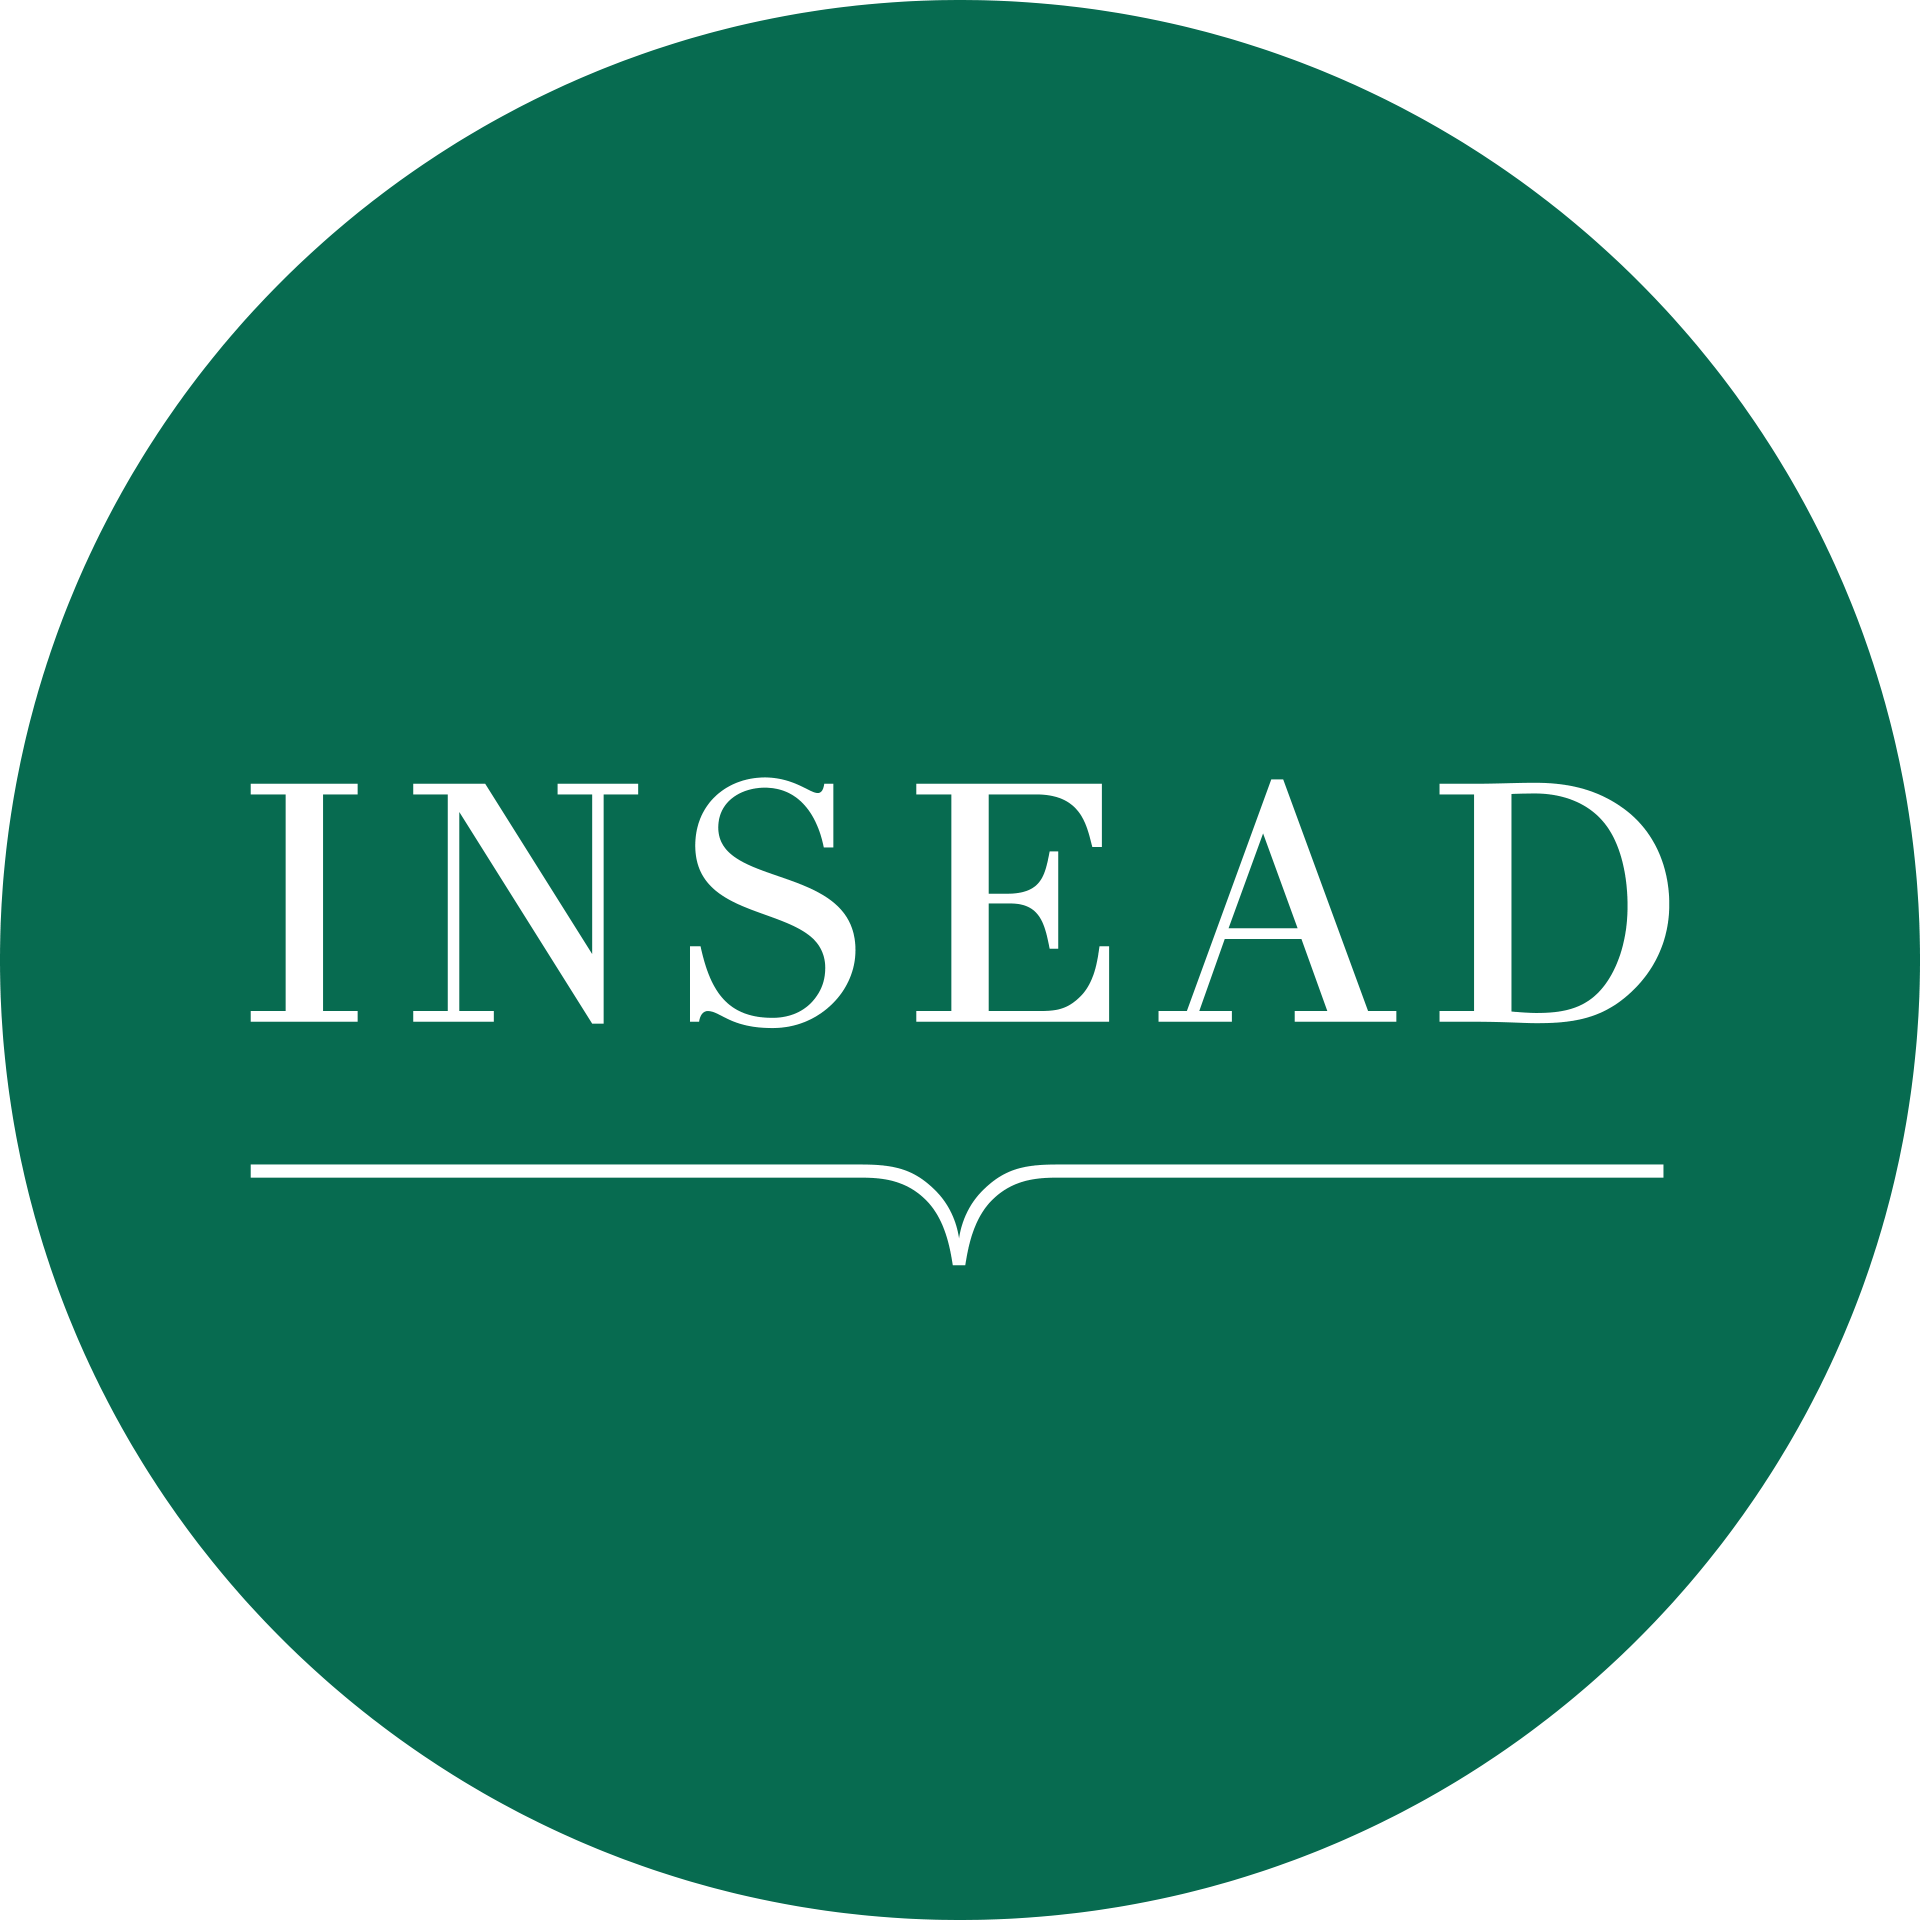 INSEAD Annual Report - 2018